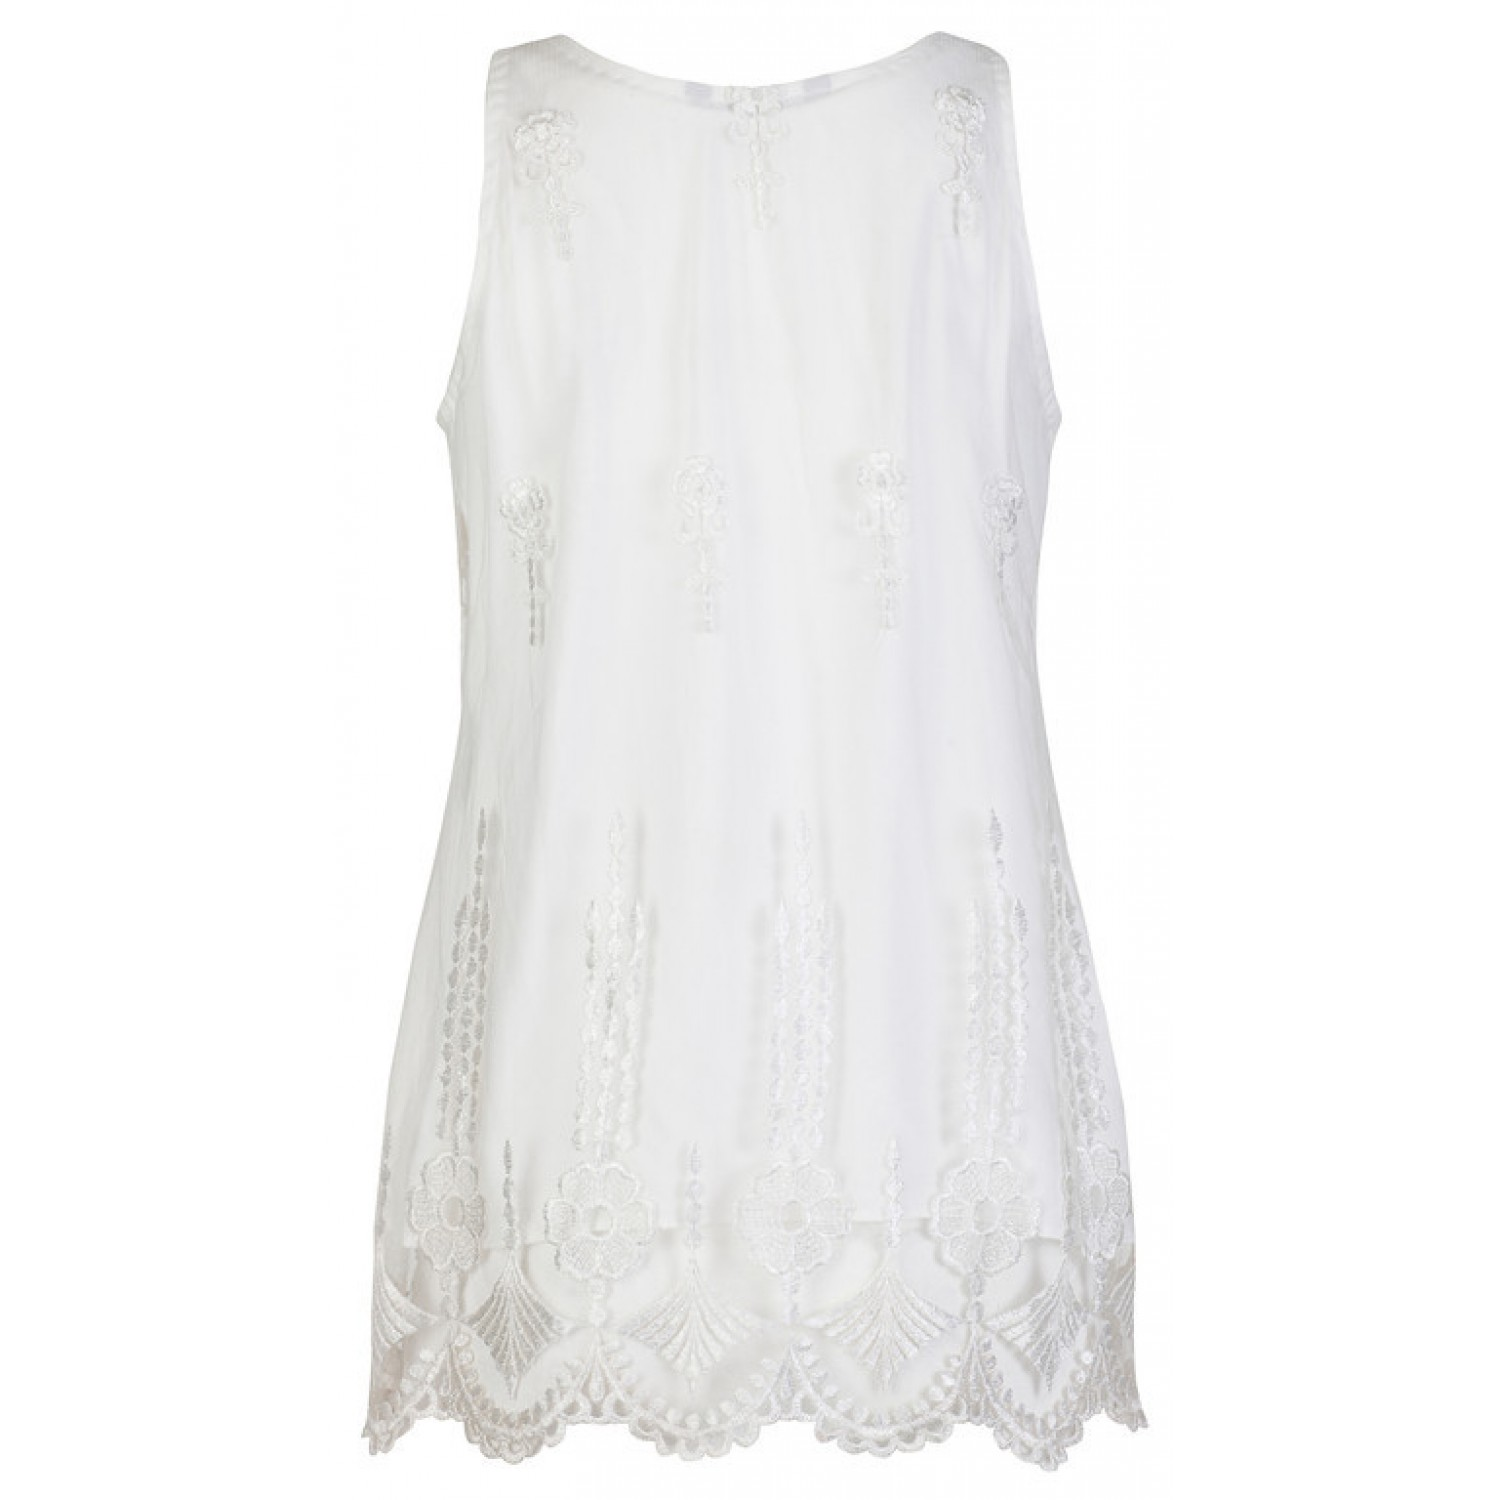 2b8411acb08c8b Sleeveless White Embroidered Lace Top, Women's Clothing